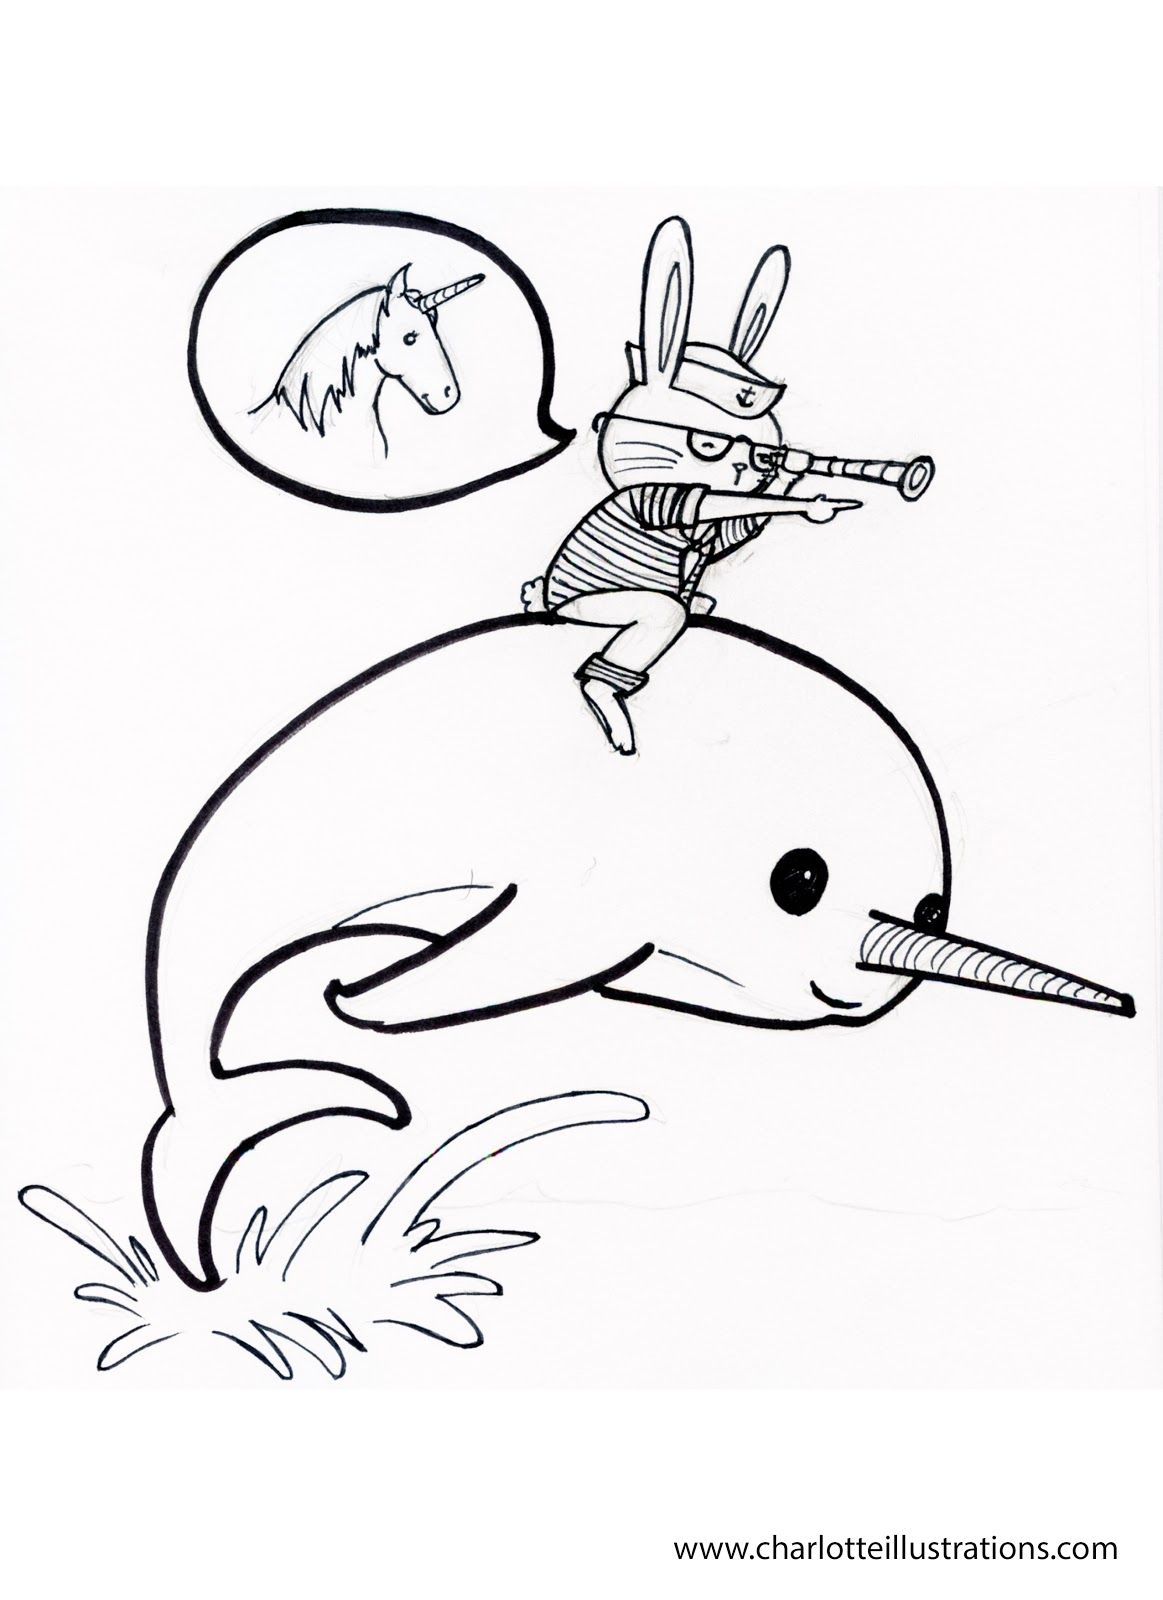 Narwhal Coloring Pages Coloring pages, Printable